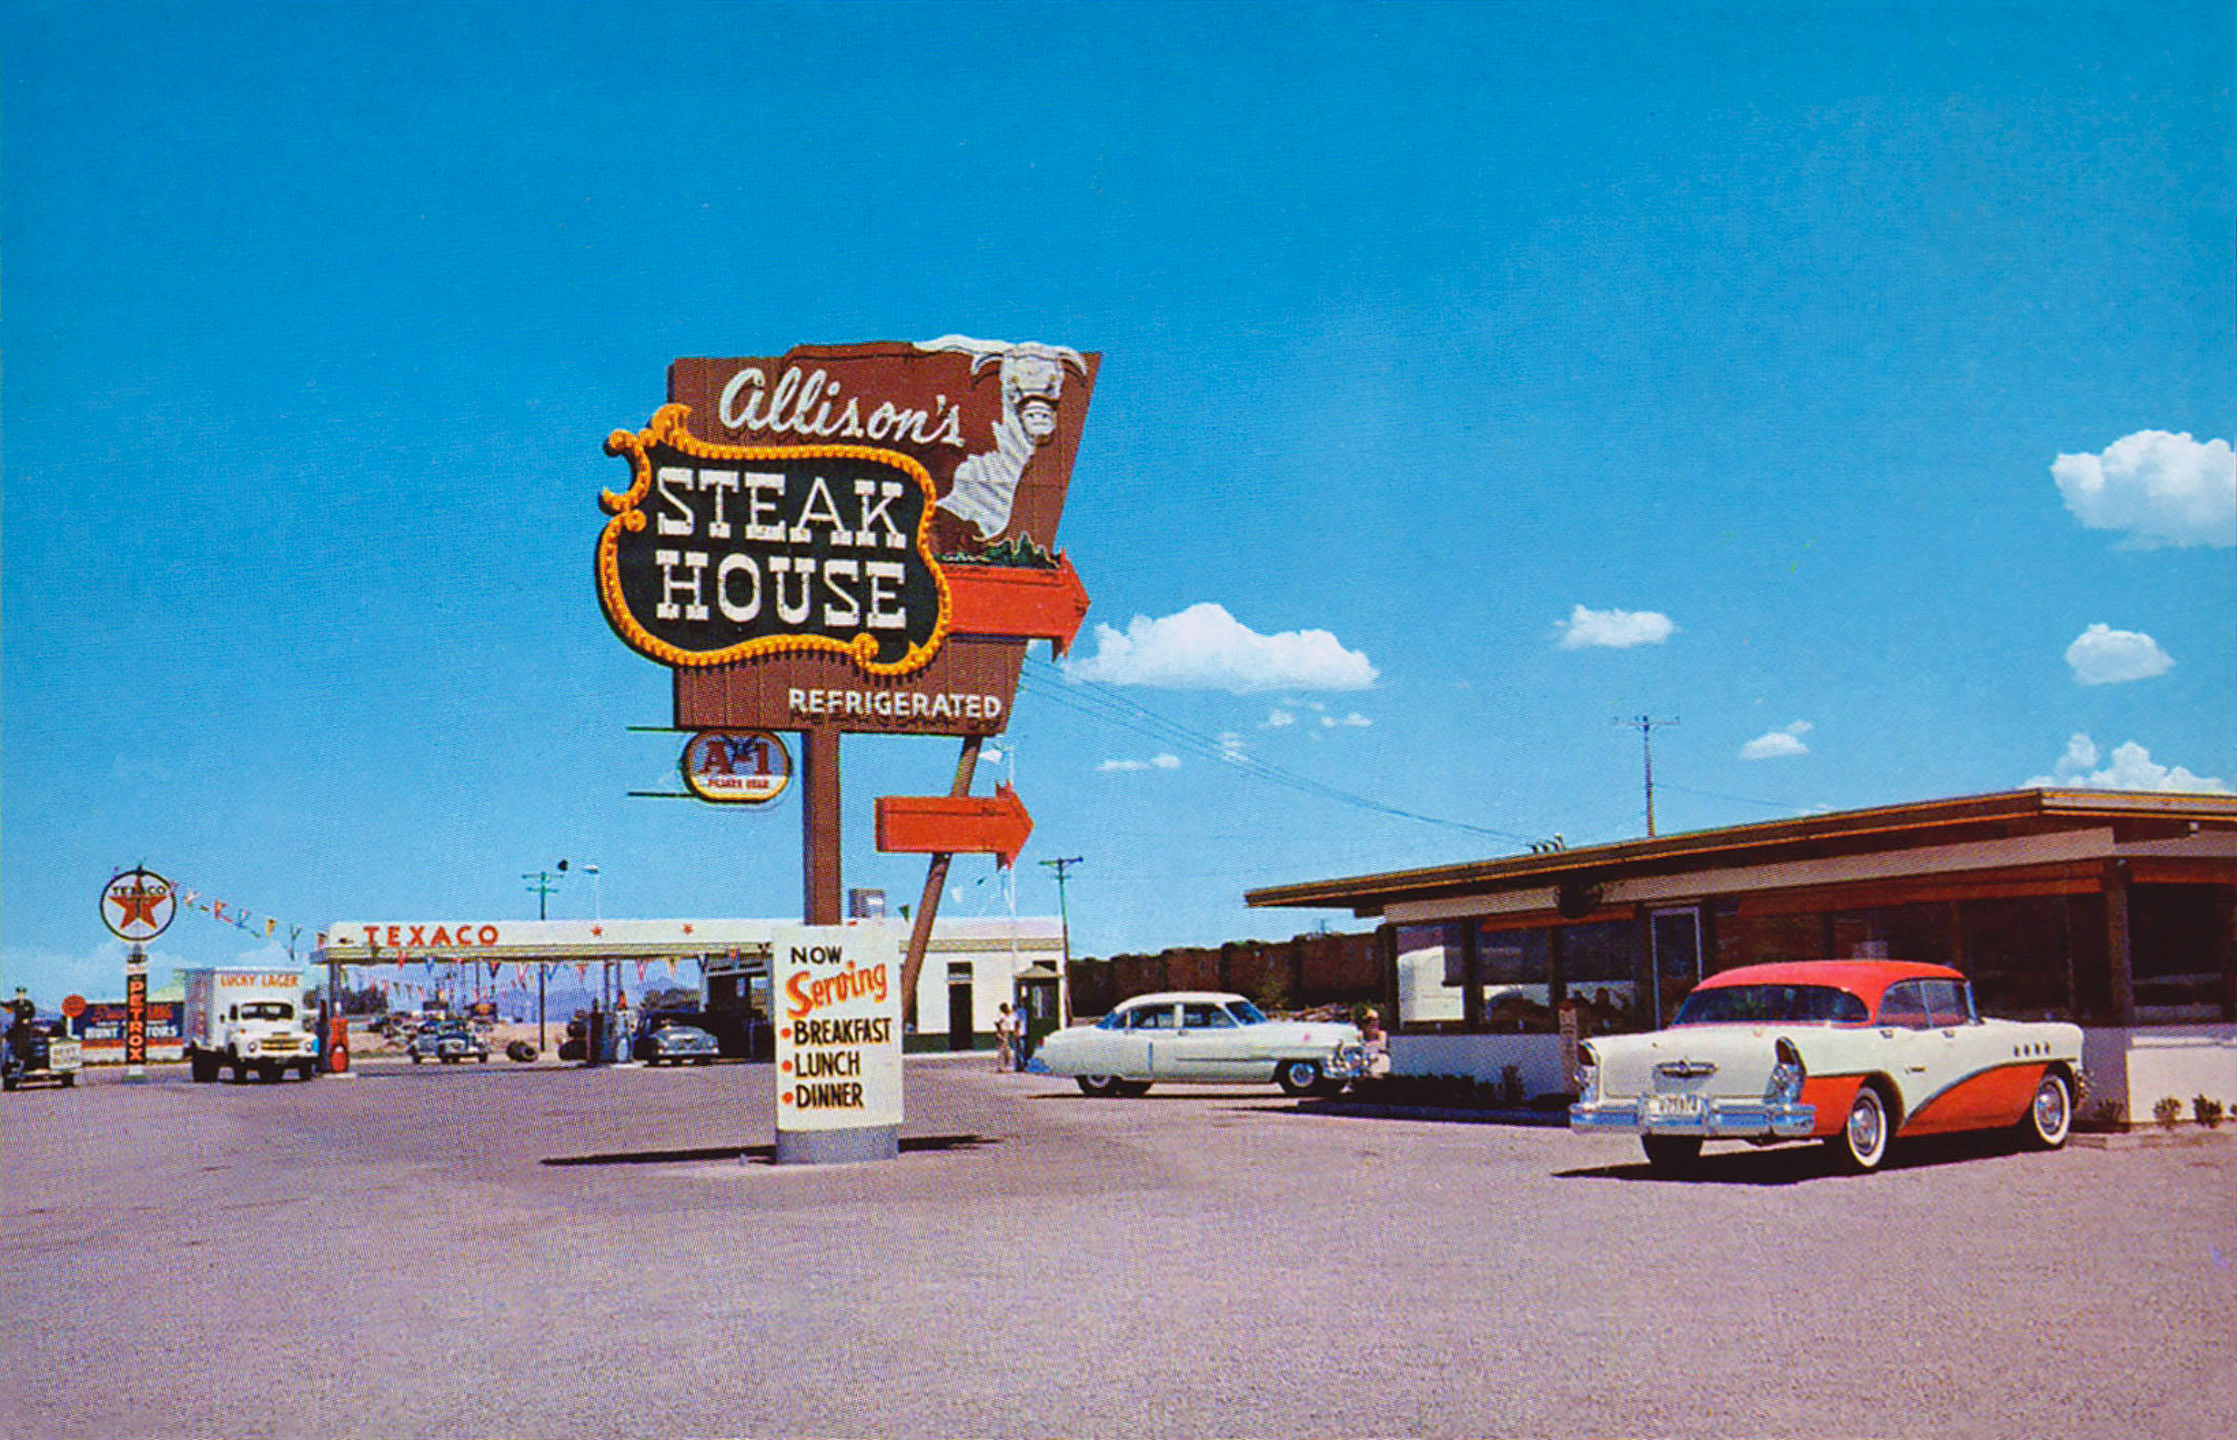 Allison's Steak House - Gila Bend, Arizona U.S.A. - 1950's